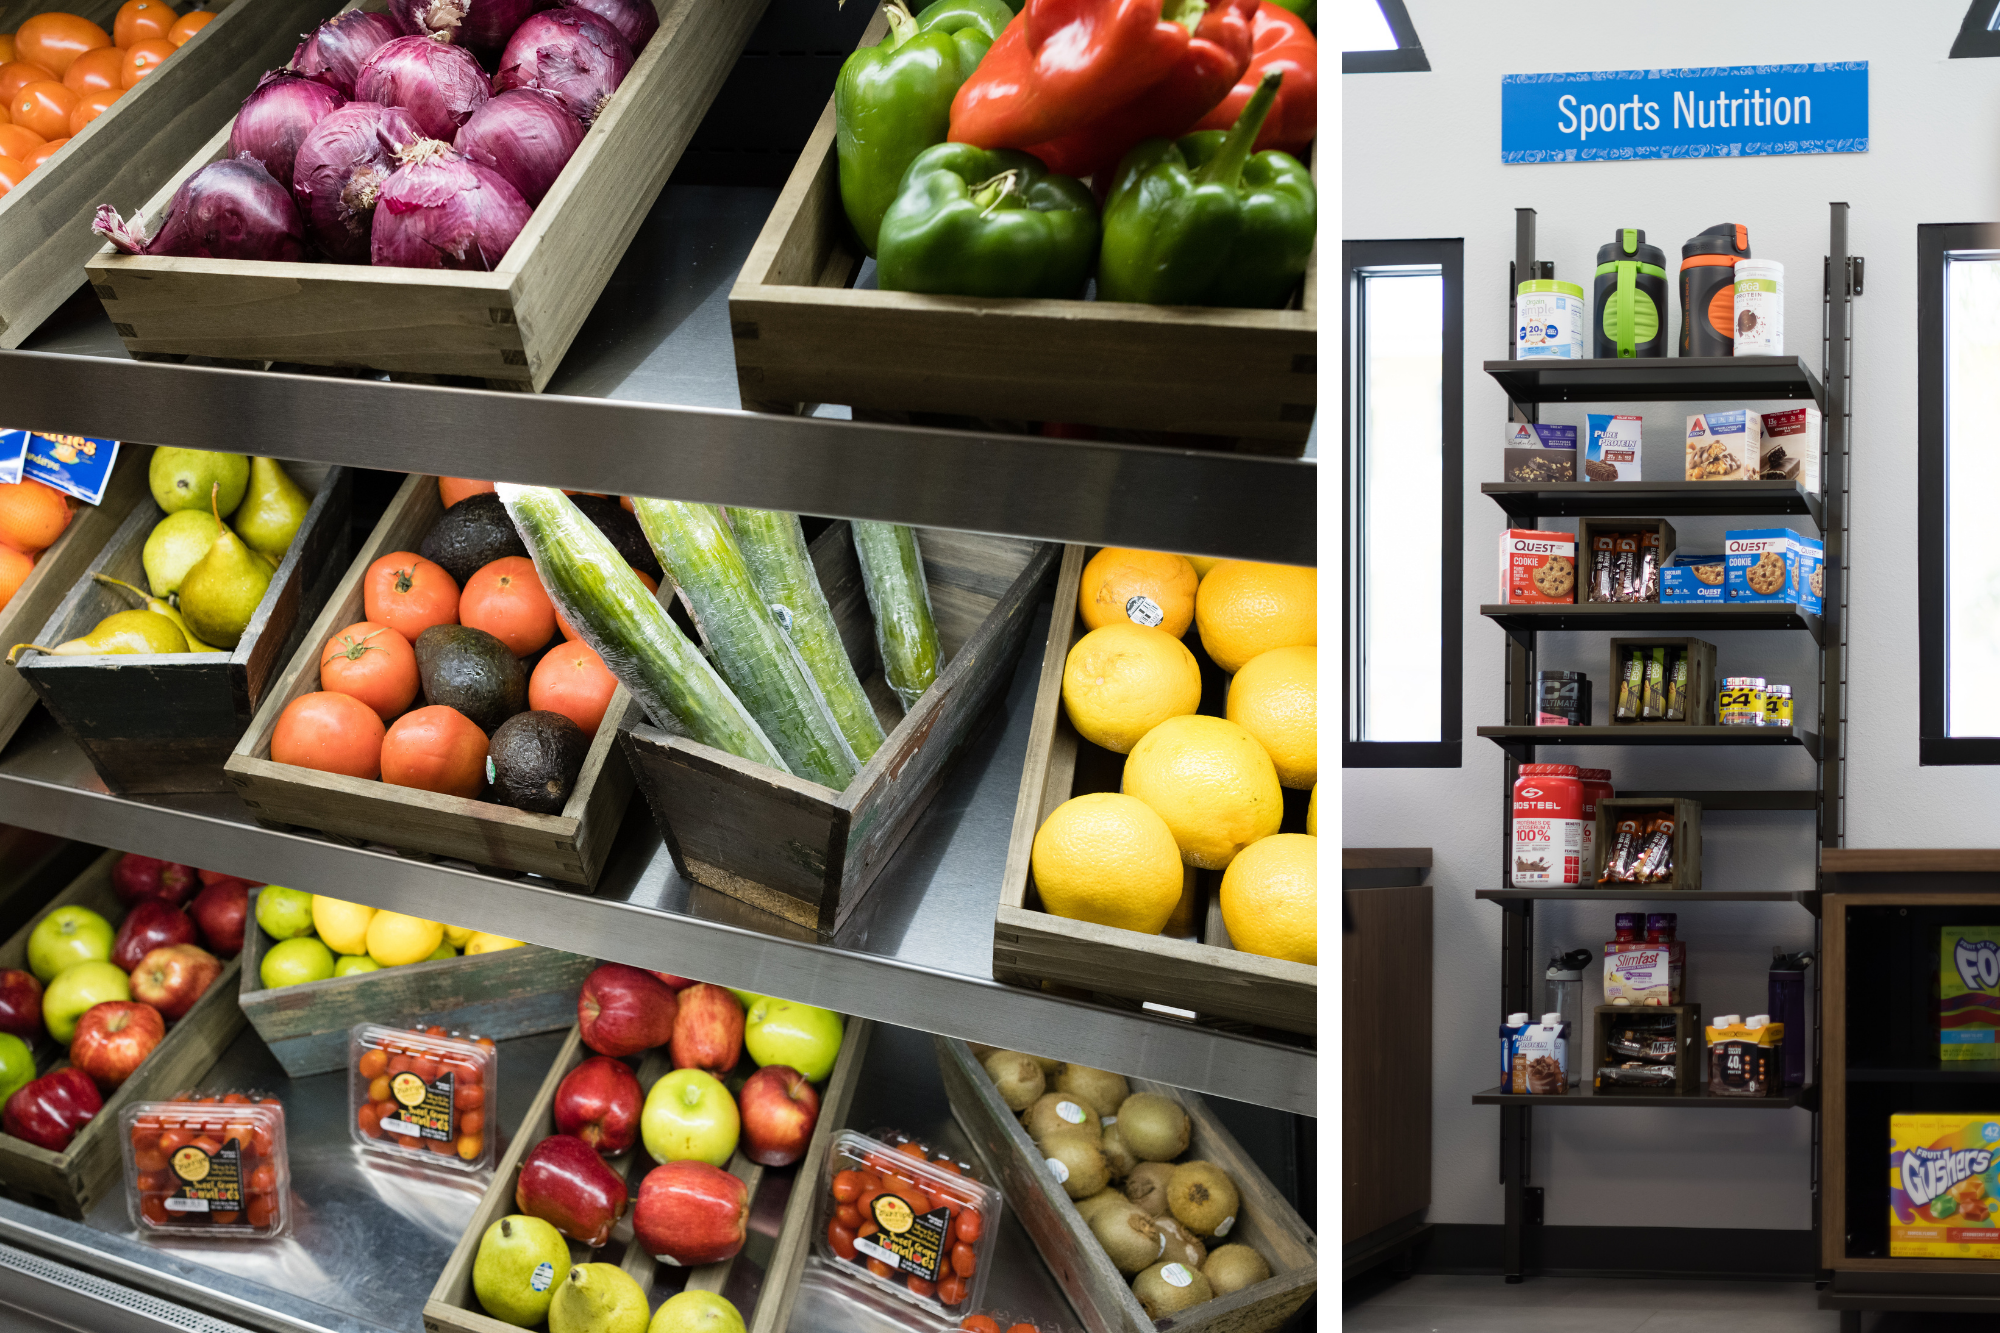 The Fox Lodge's produce and sports nutrition sections